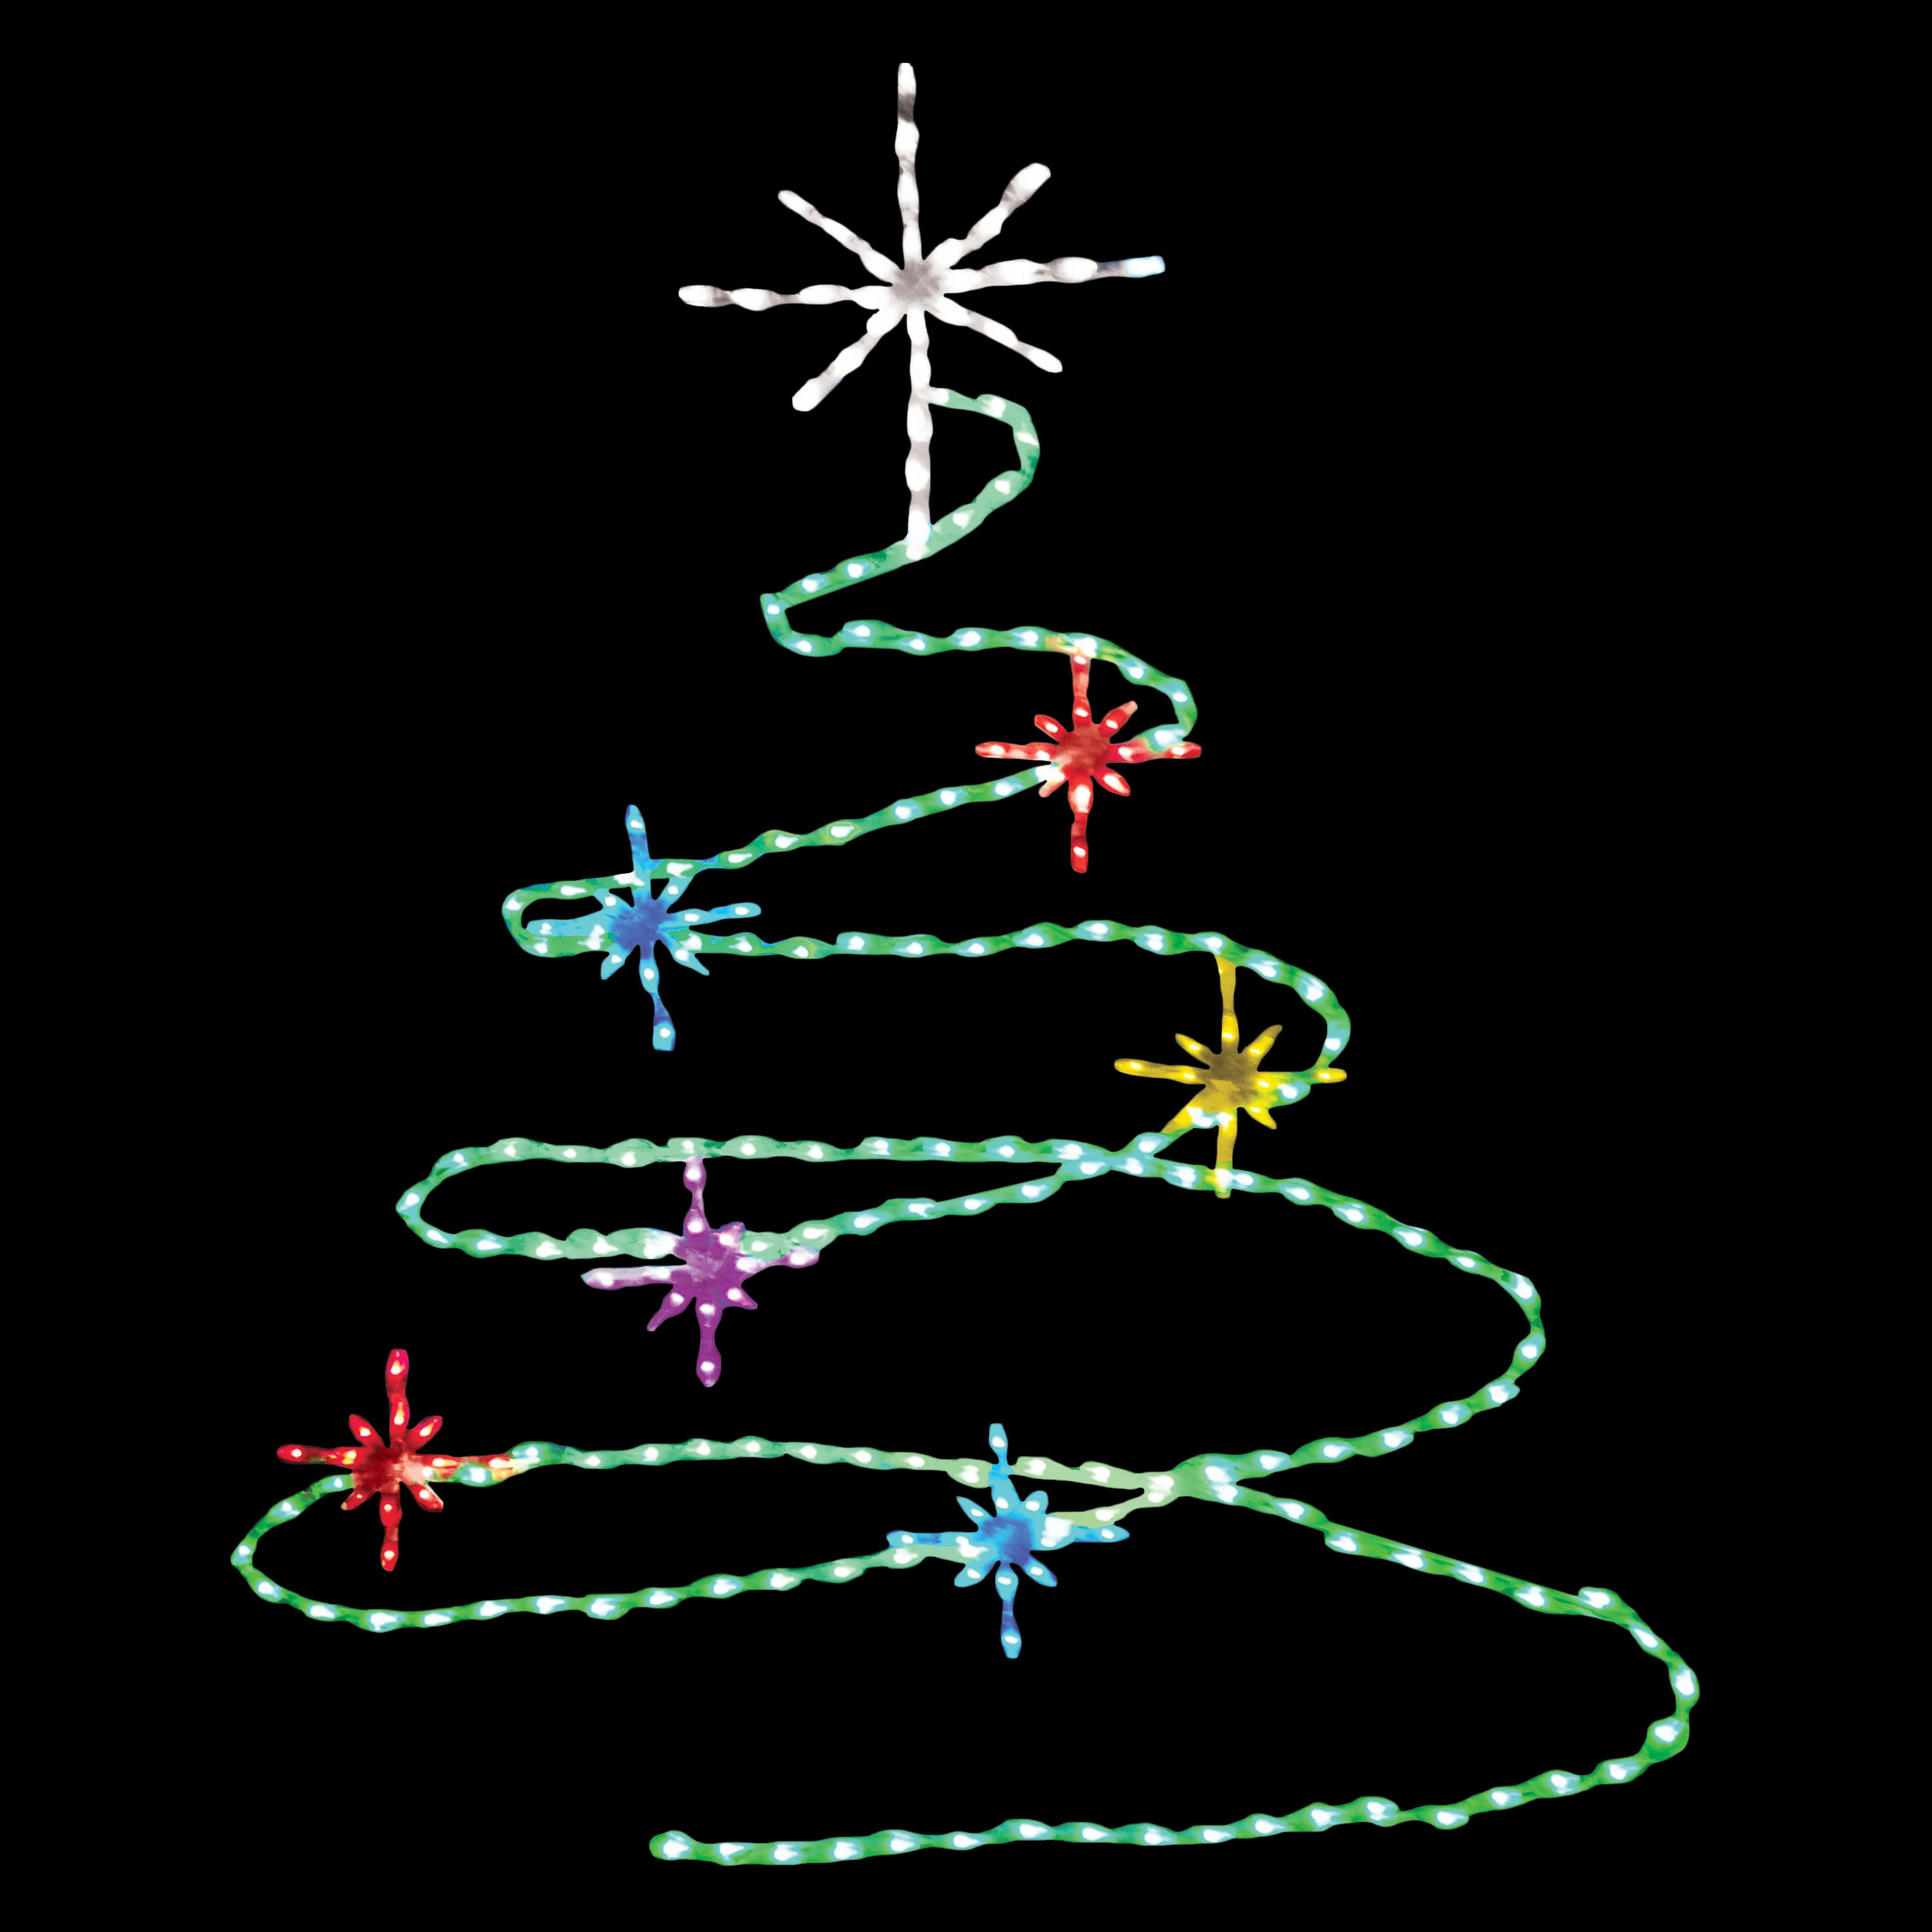 72 in. LED Spiral Tree Lighted Display - 248 Bulbs